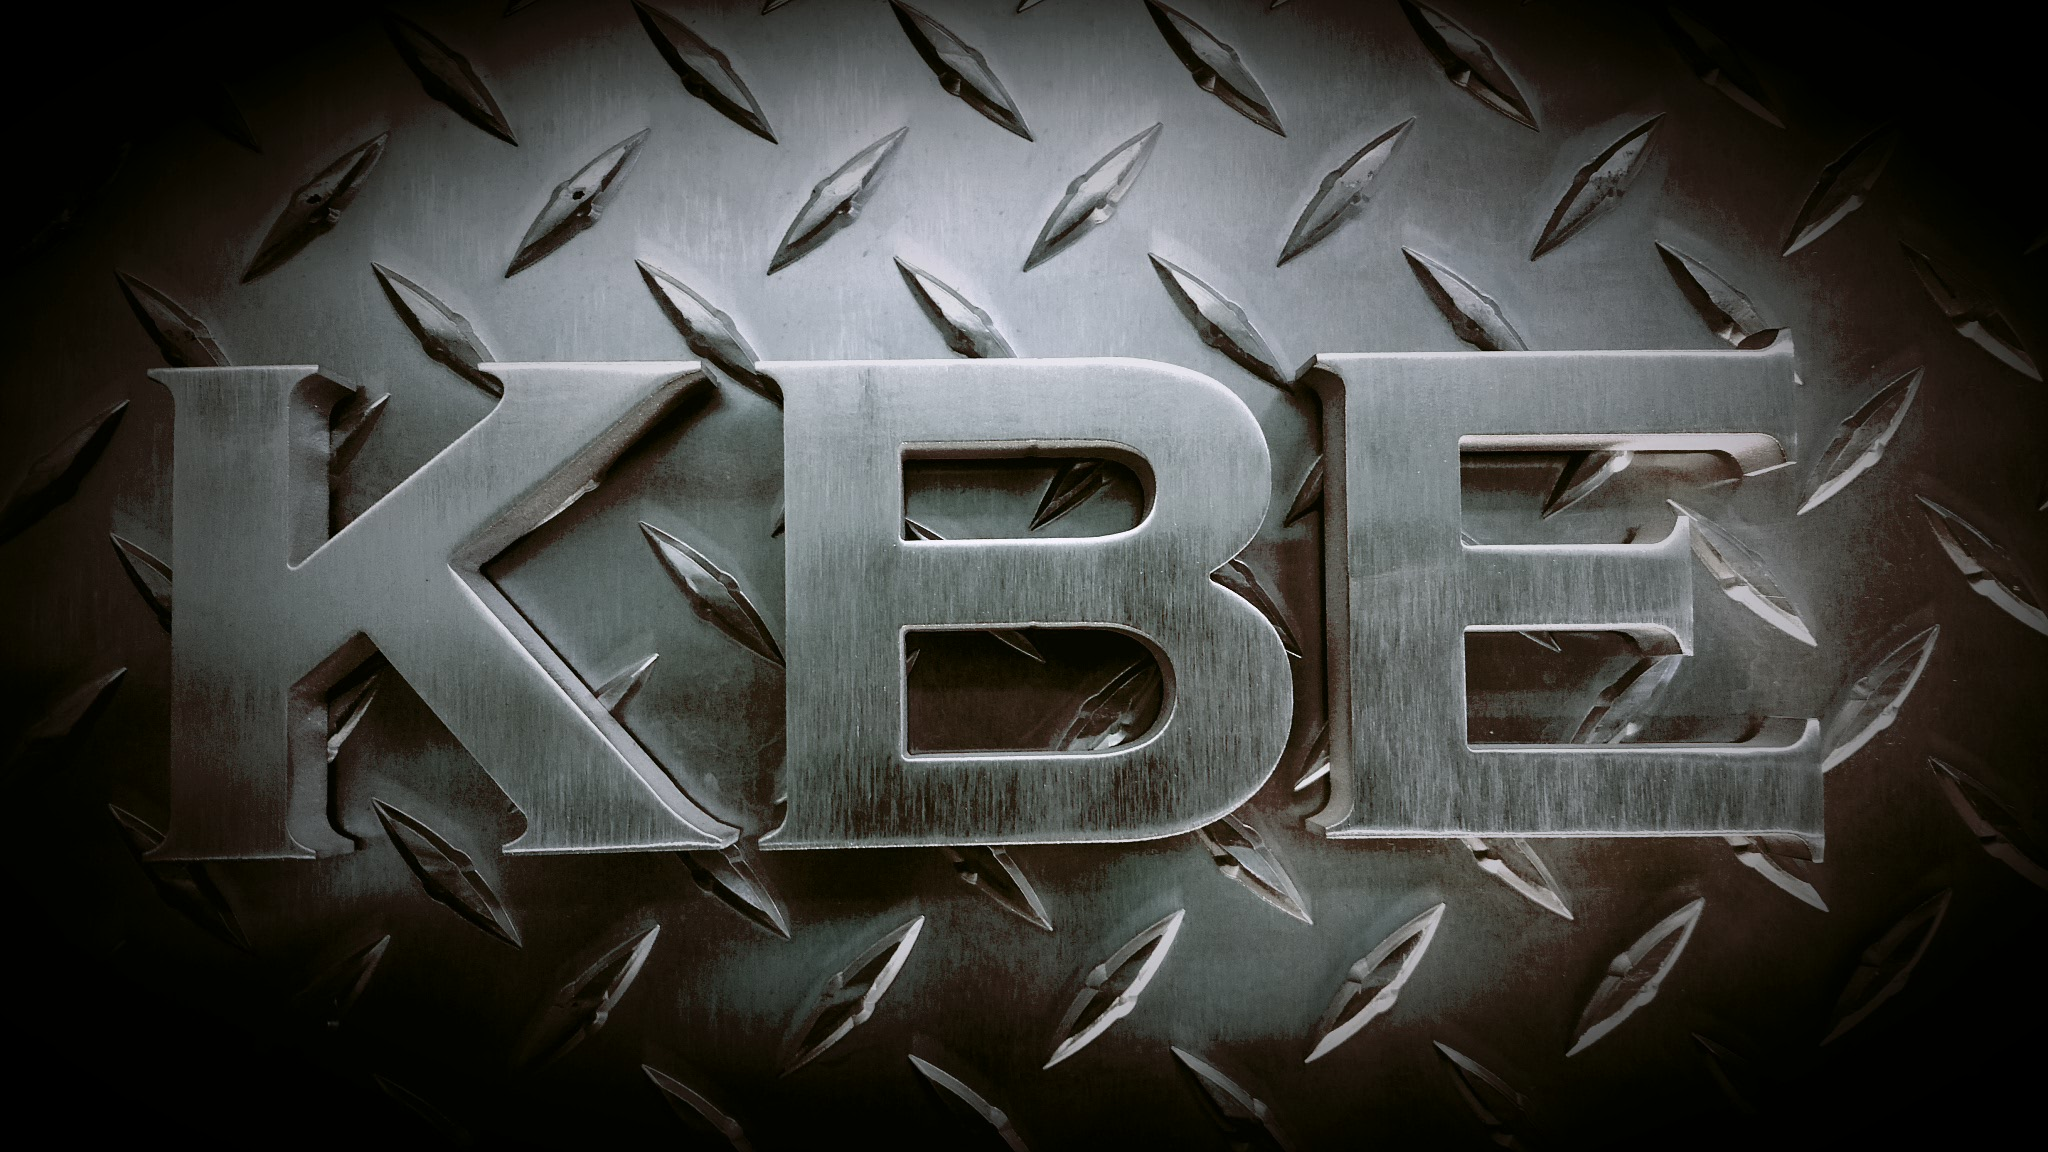 kbeprecisionproducts